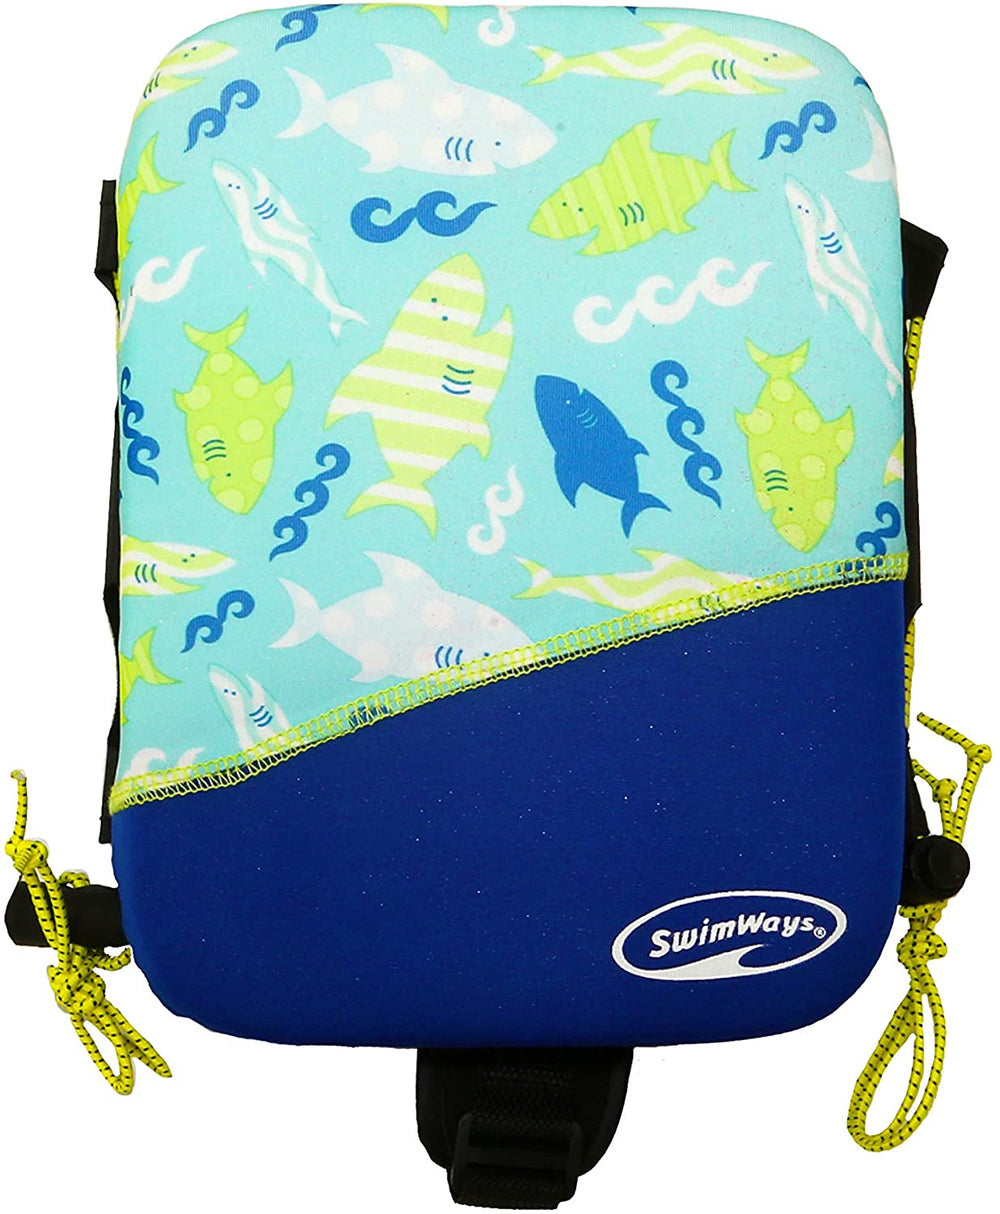 Swimways Power Swimr - Medium